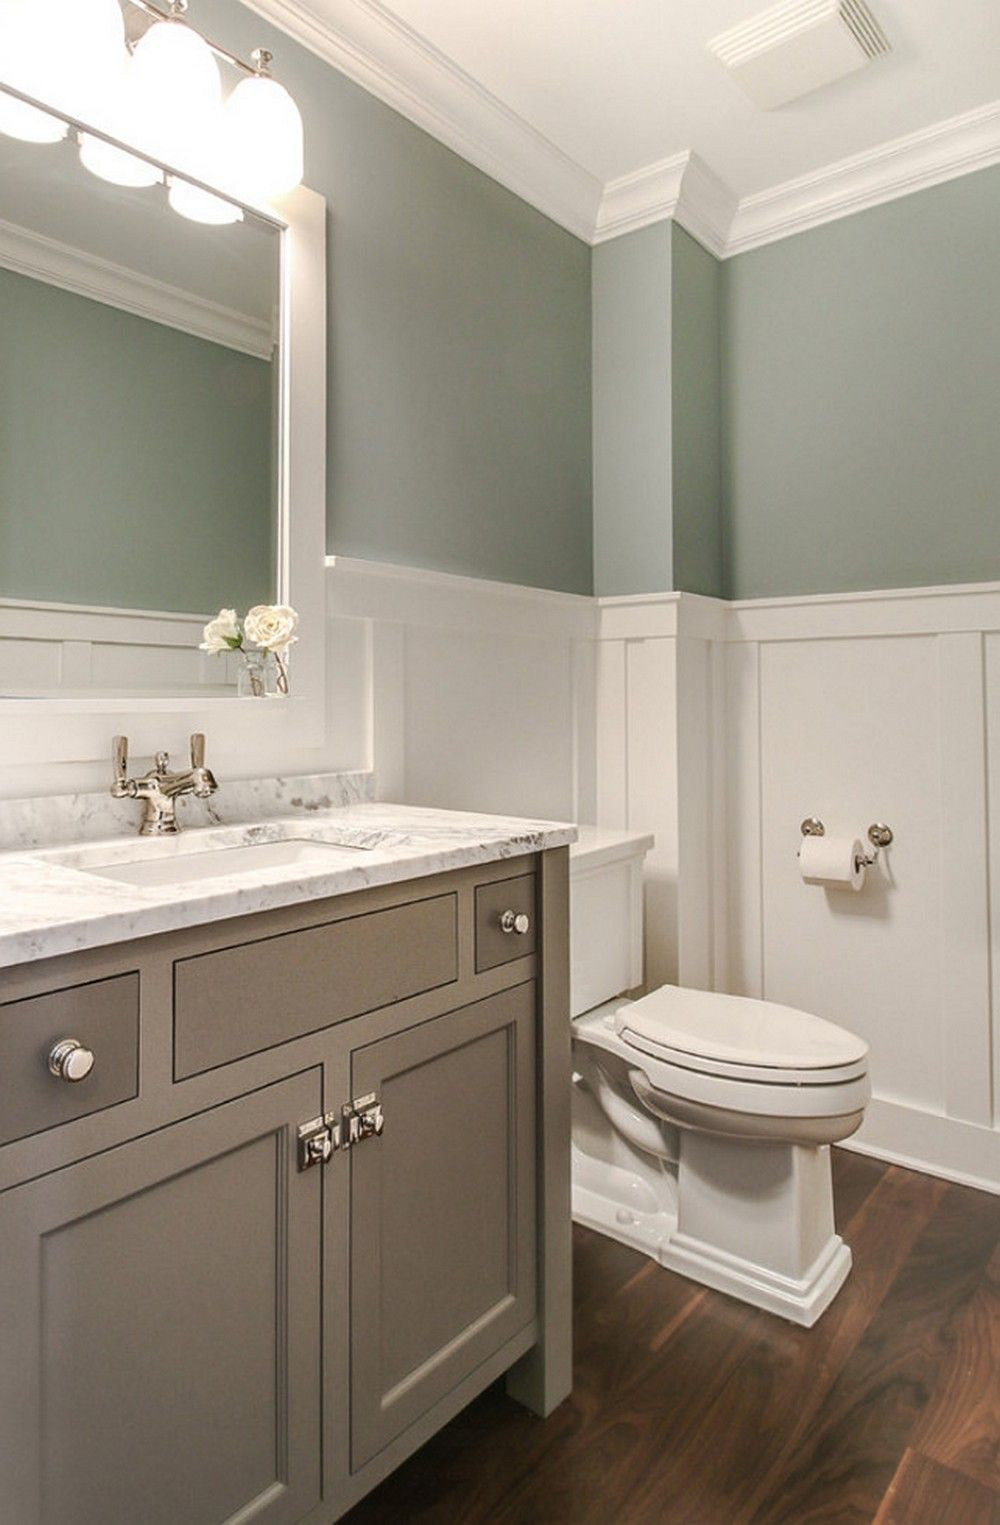 Pin by Decoria on Bathroom Decorating Ideas  Bathroom Tranquil bathroom Wainscoting bathroom